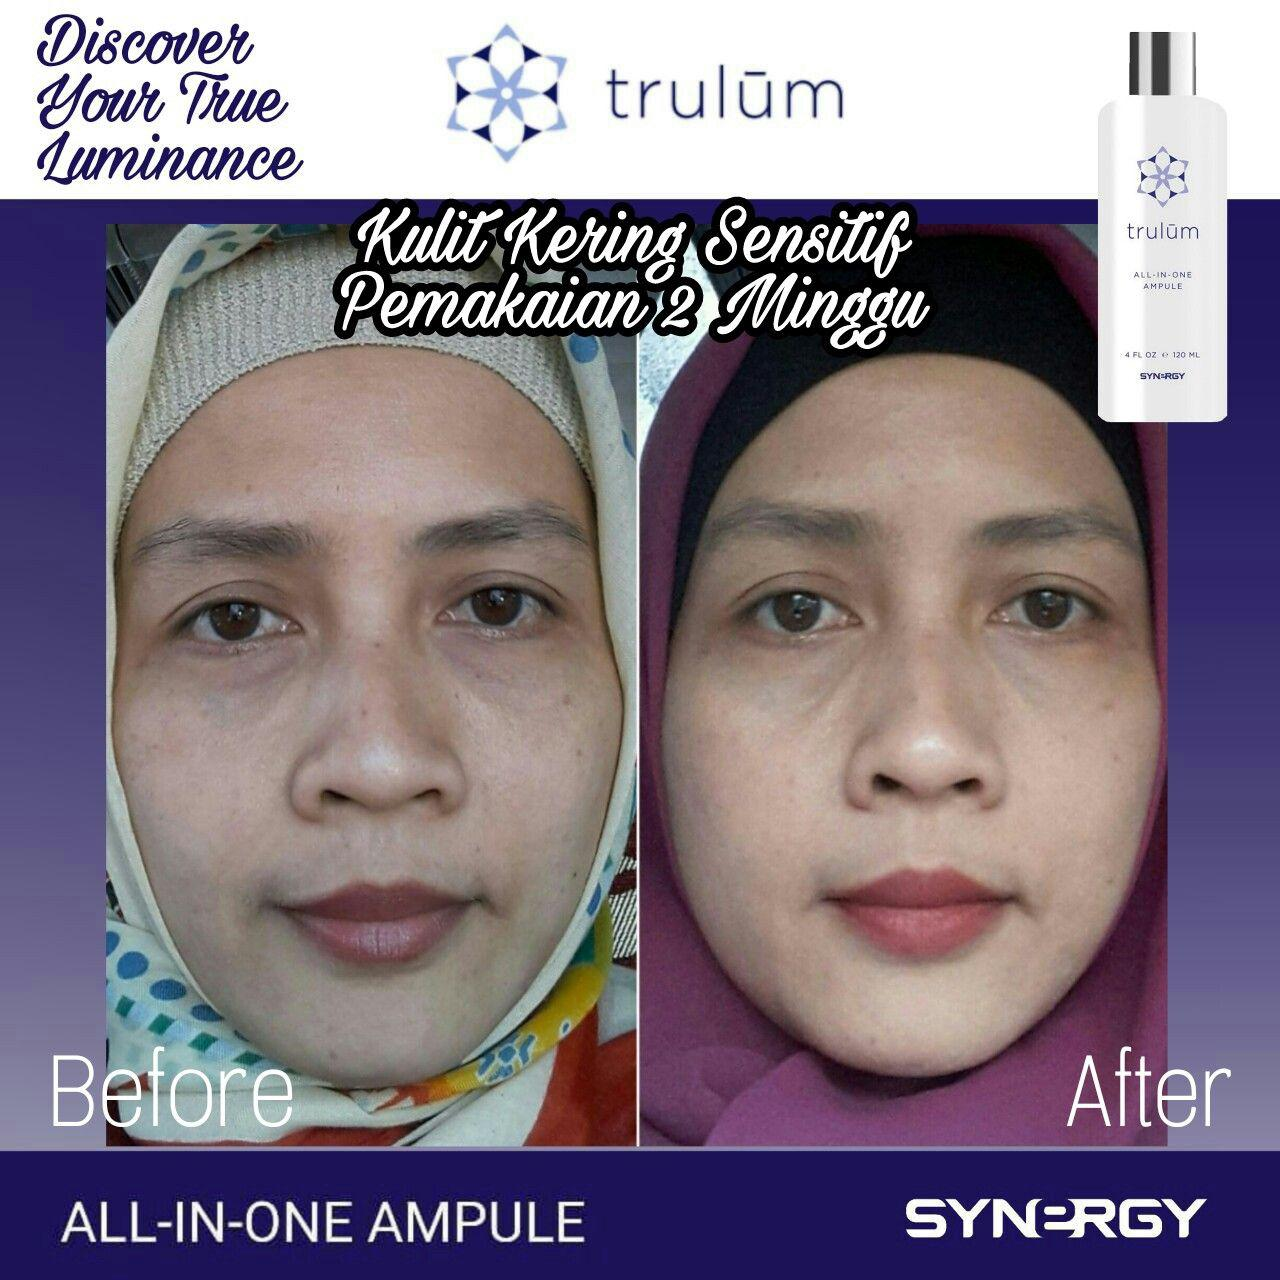 Jual Trulum All In One Ampoule Di Lahei WA: 08112338376